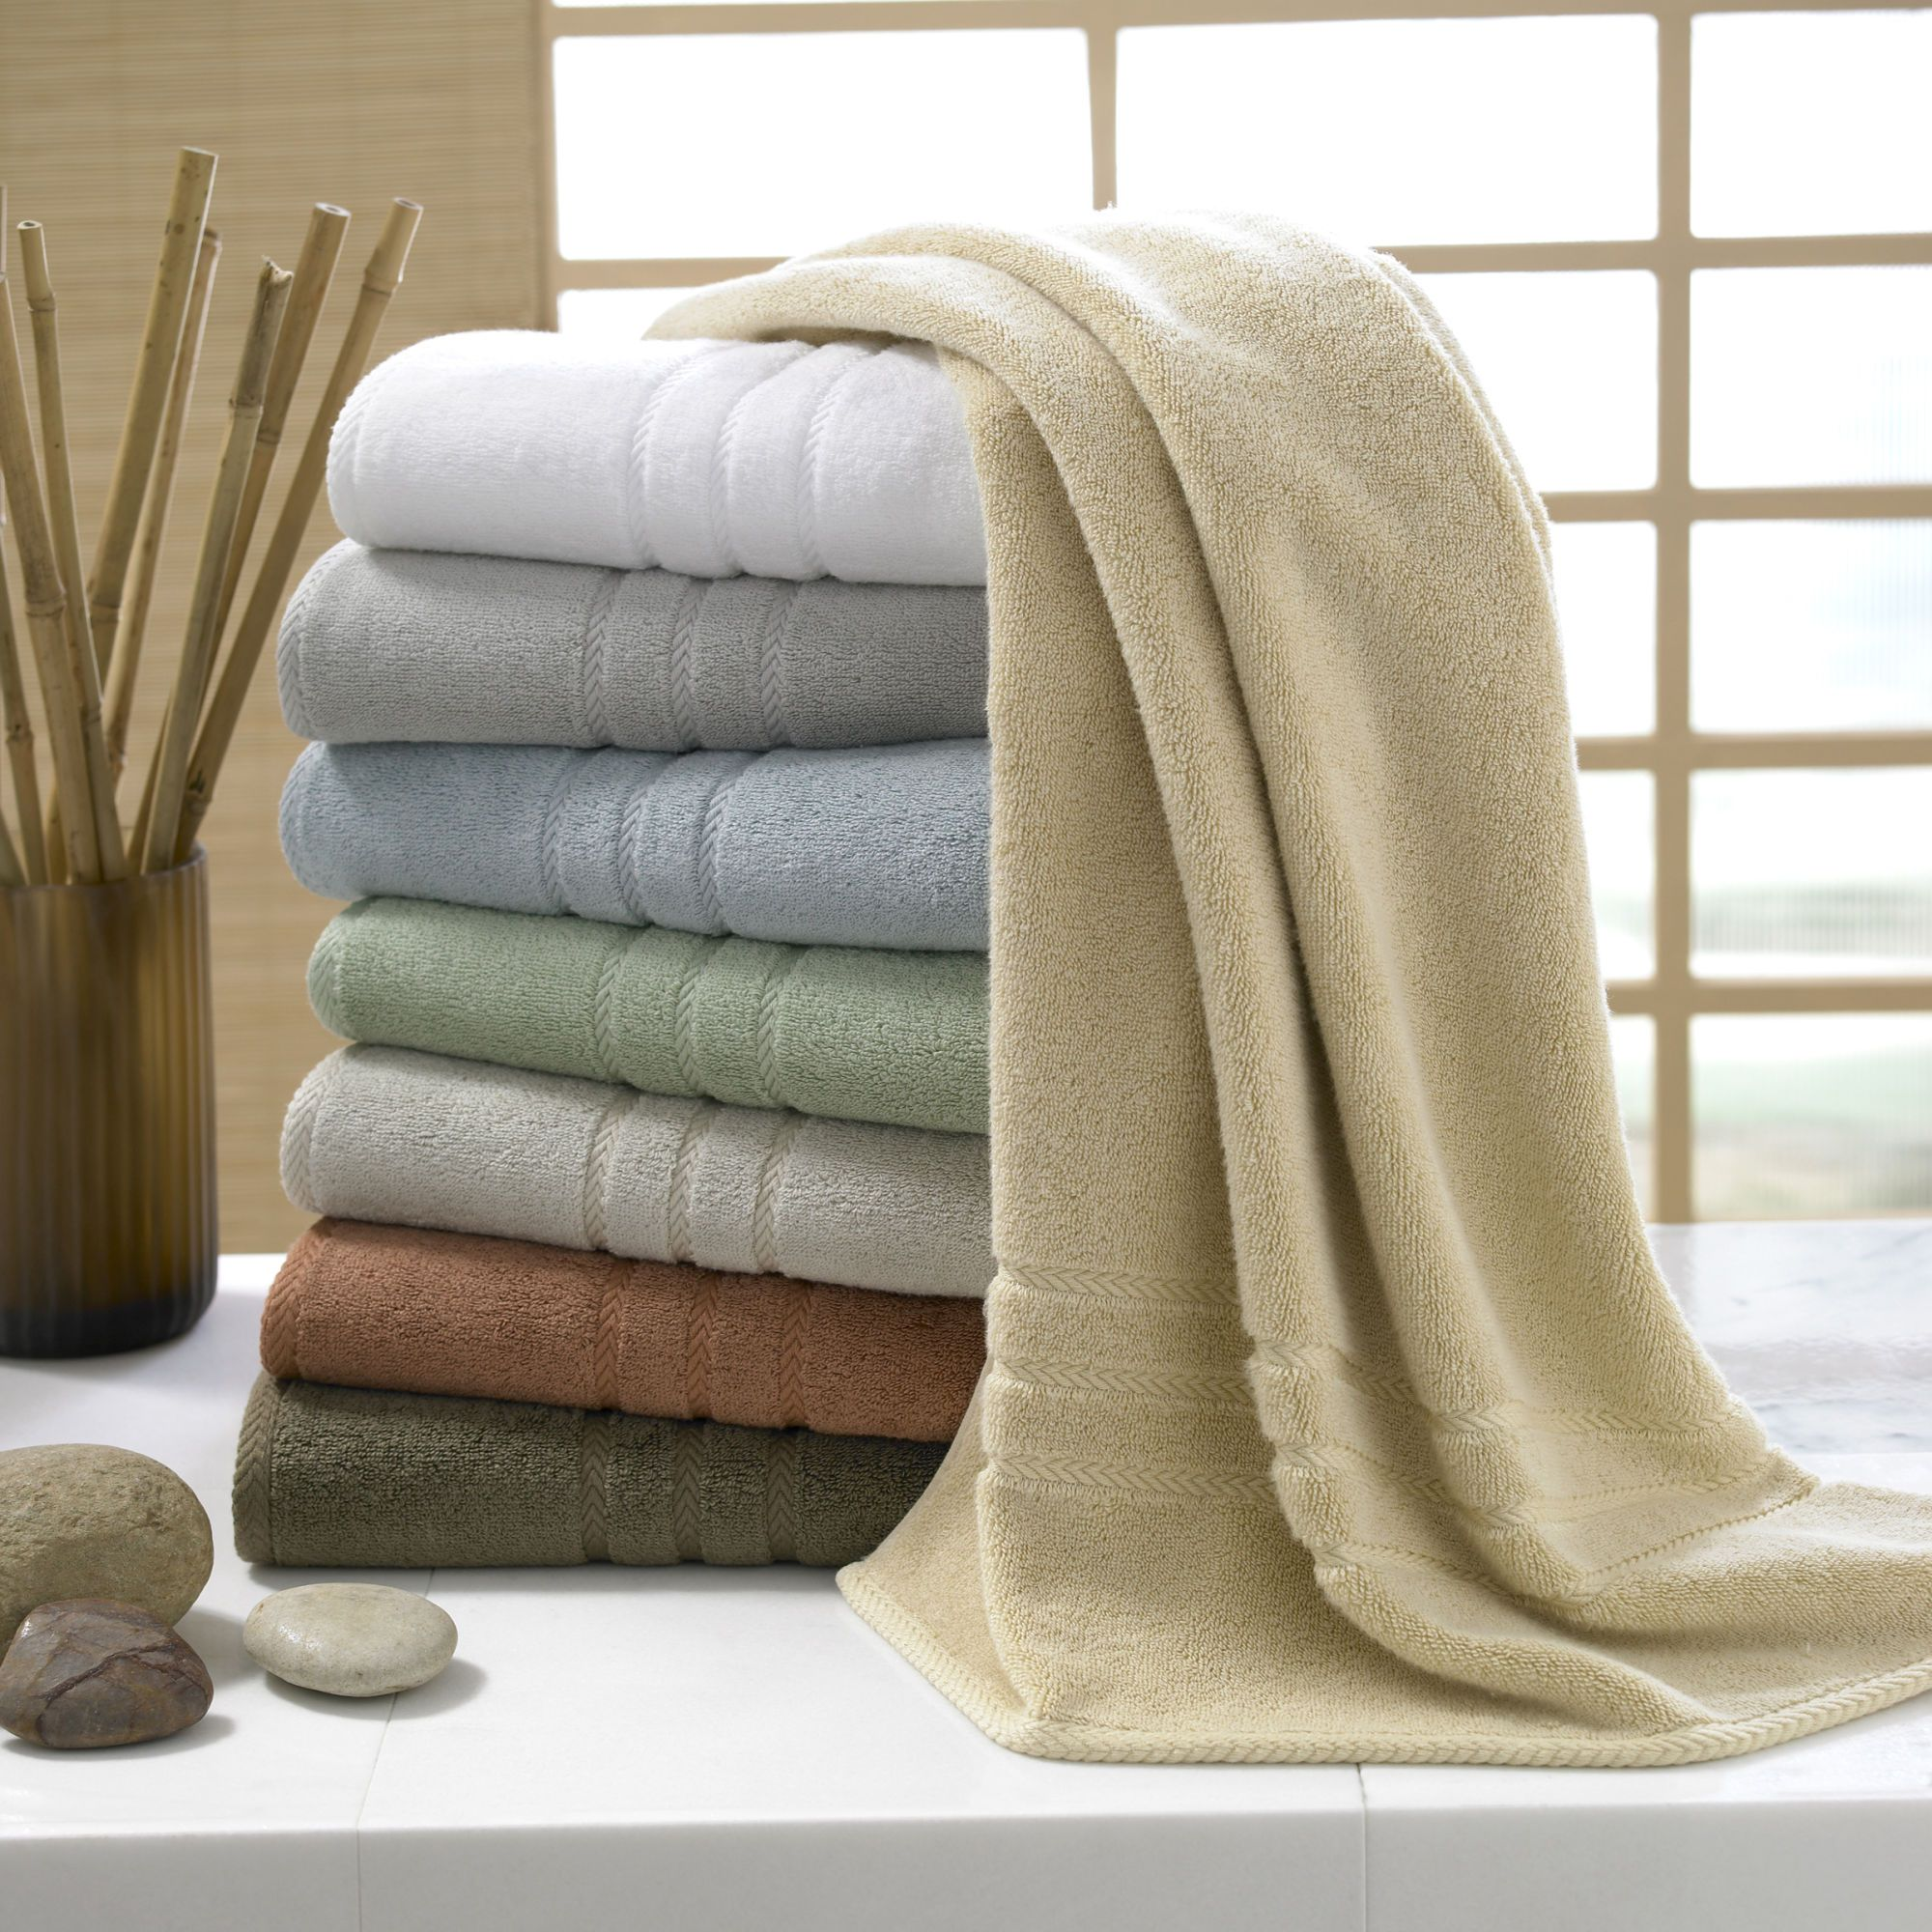 Kassatex Eco Luxe Bath Sheets 40 Rayon Made From Bamboo 60